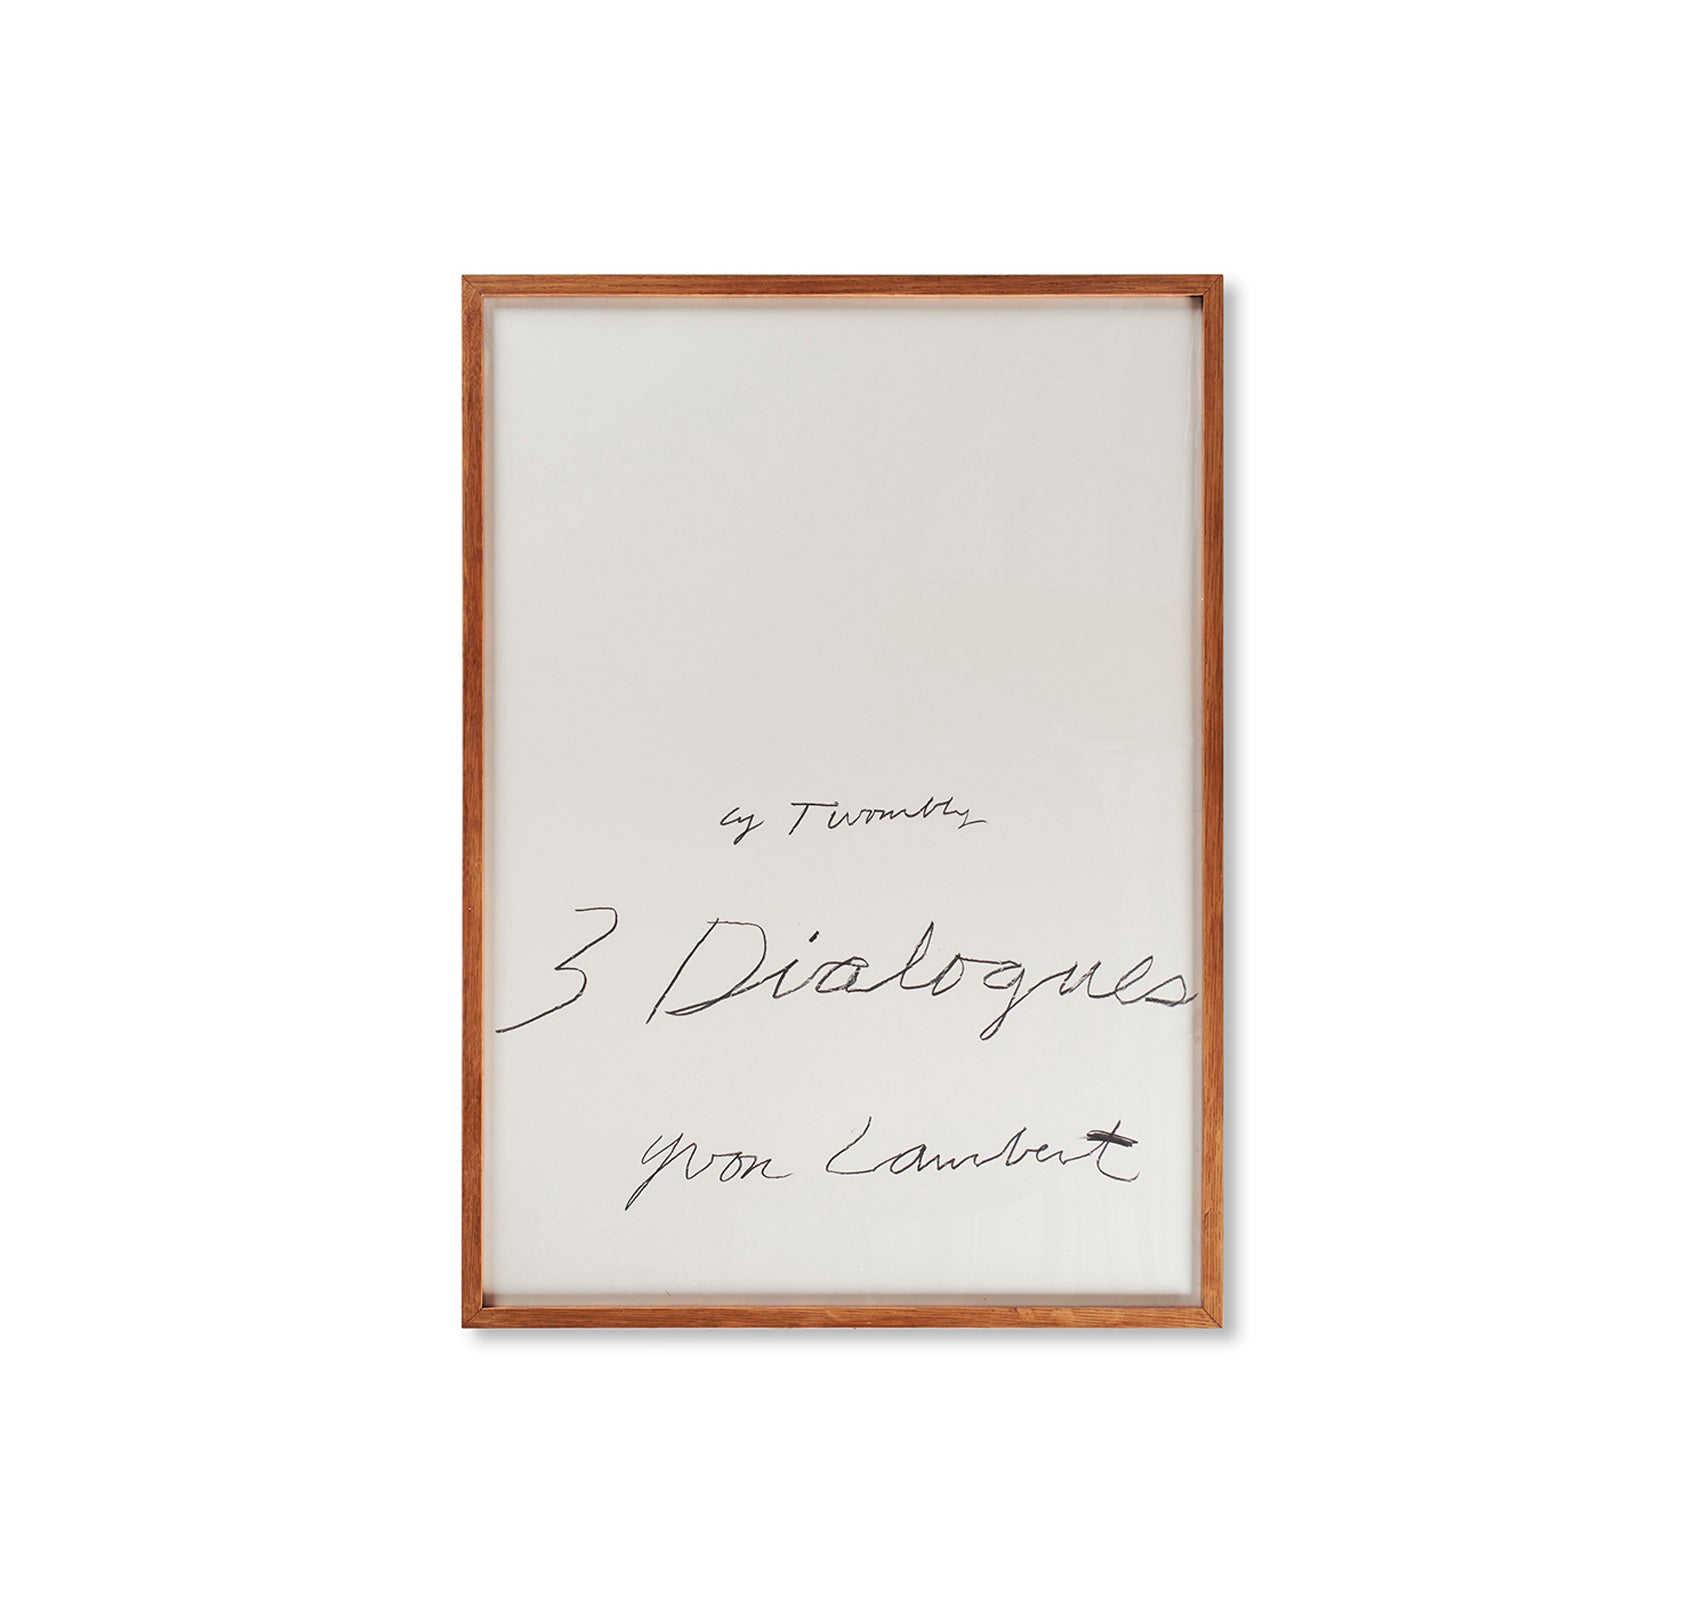 THREE DIALOGUES.1 PRINT (1977) by Cy Twombly